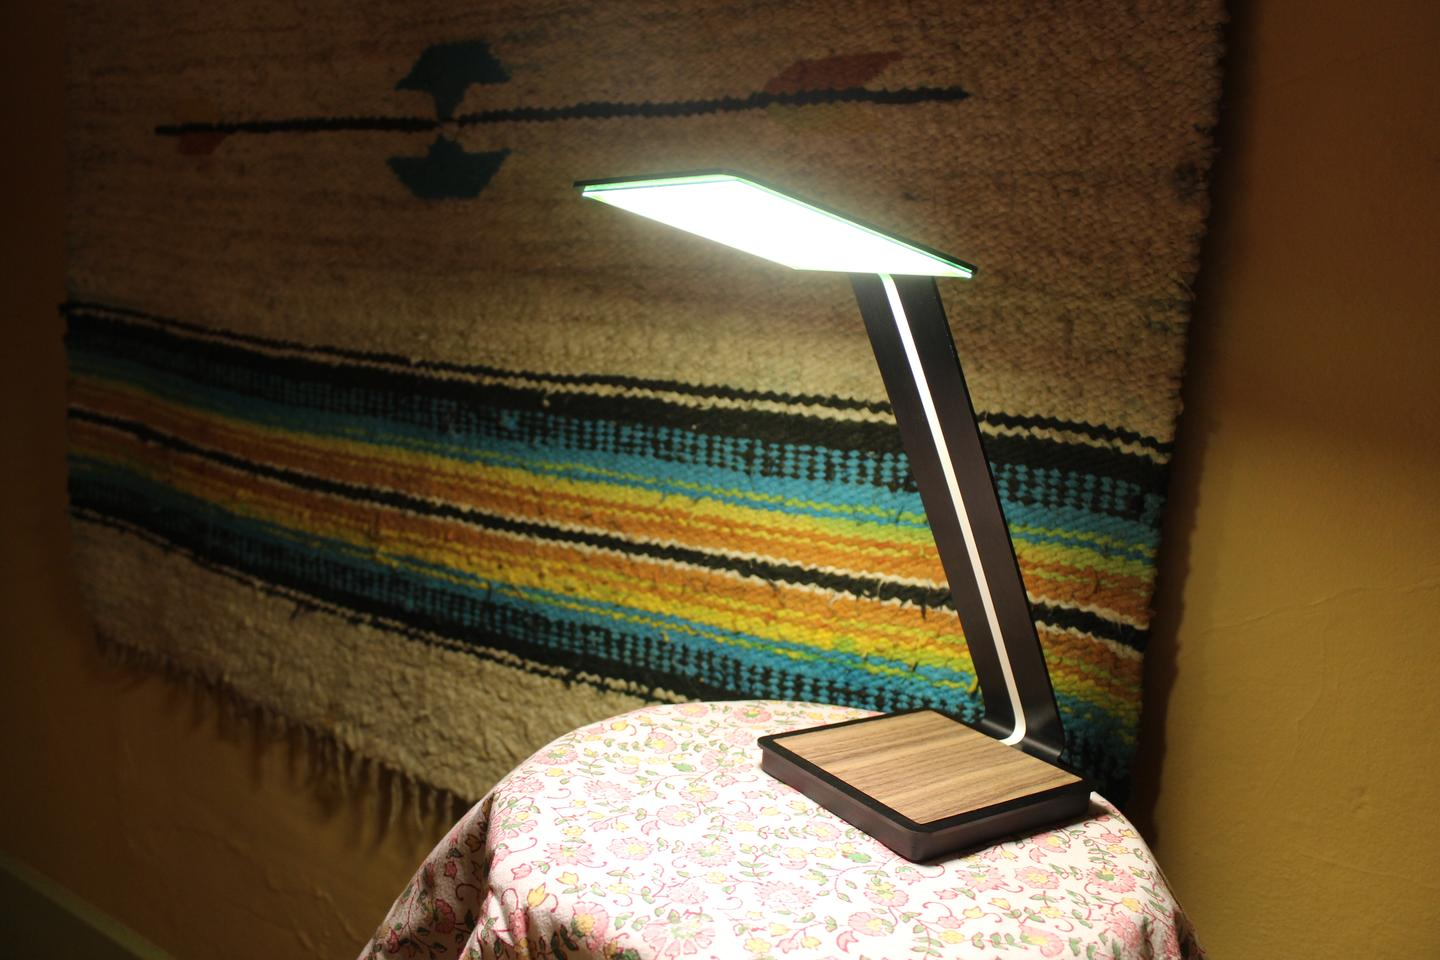 Gizmag tries out the aerelight OLED lamp (Photo: Ben Coxworth/Gizmag)